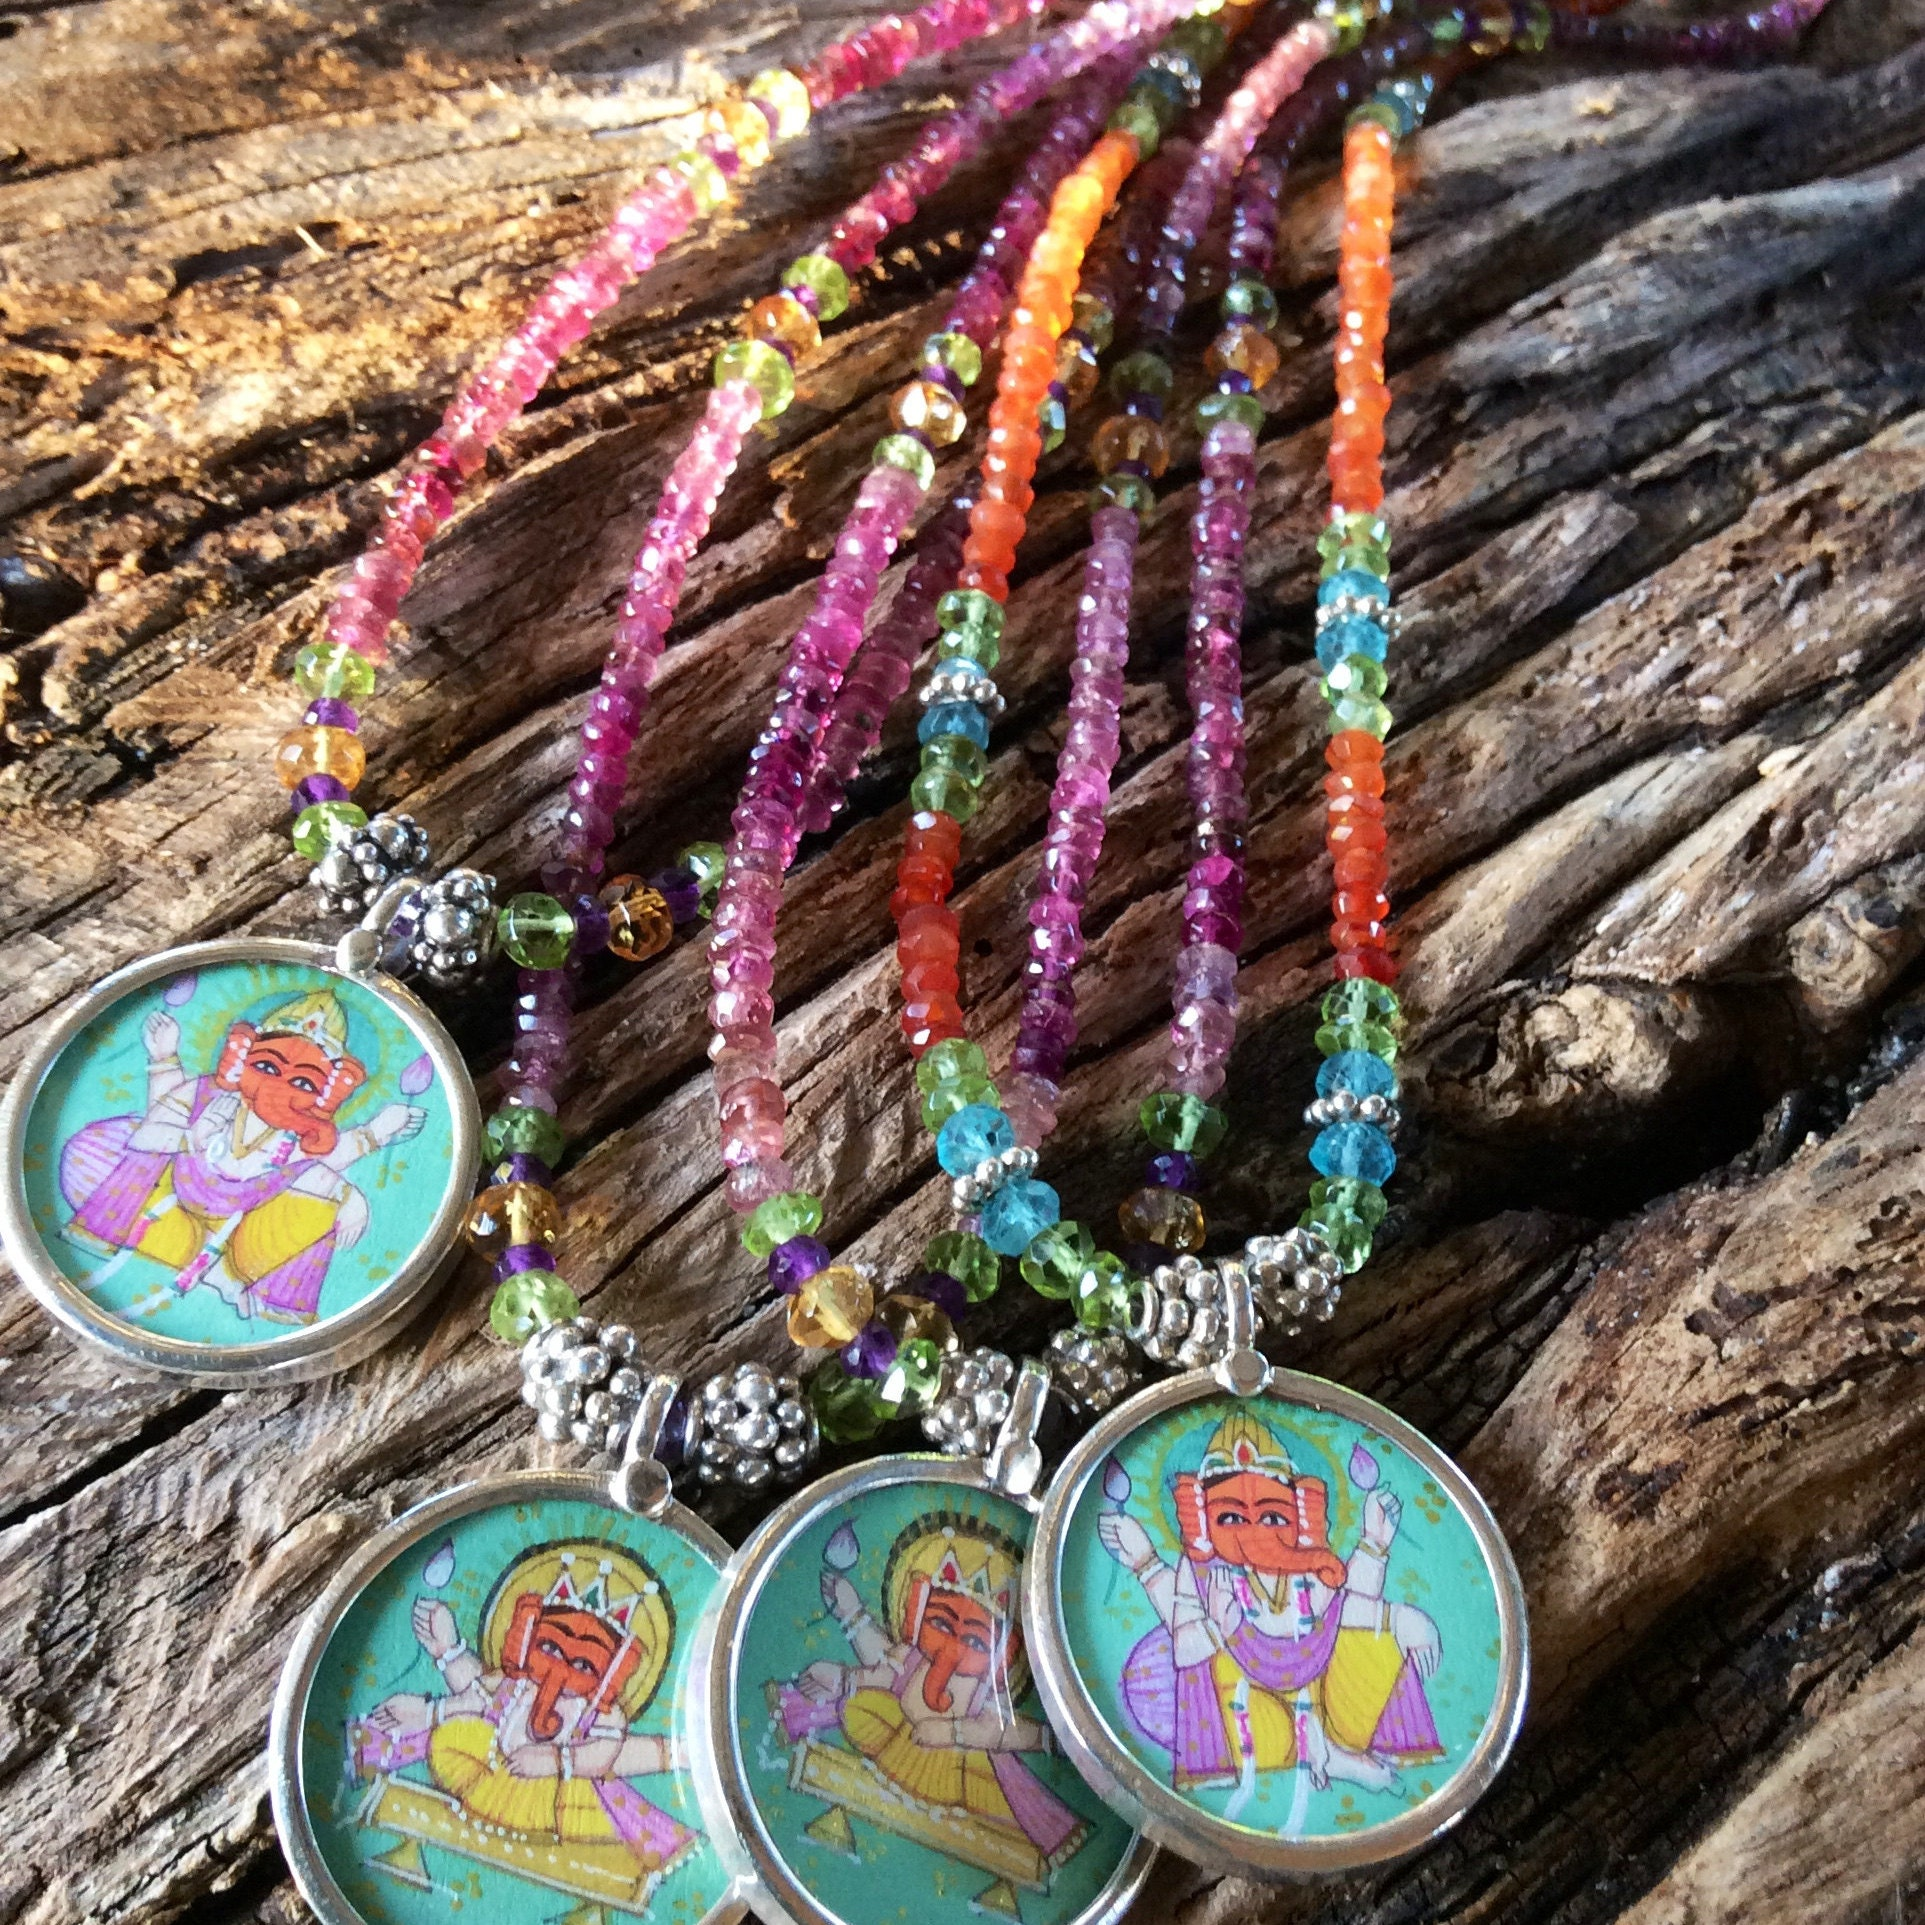 hand made jewelry inspired by nature by gloriajanell on etsy